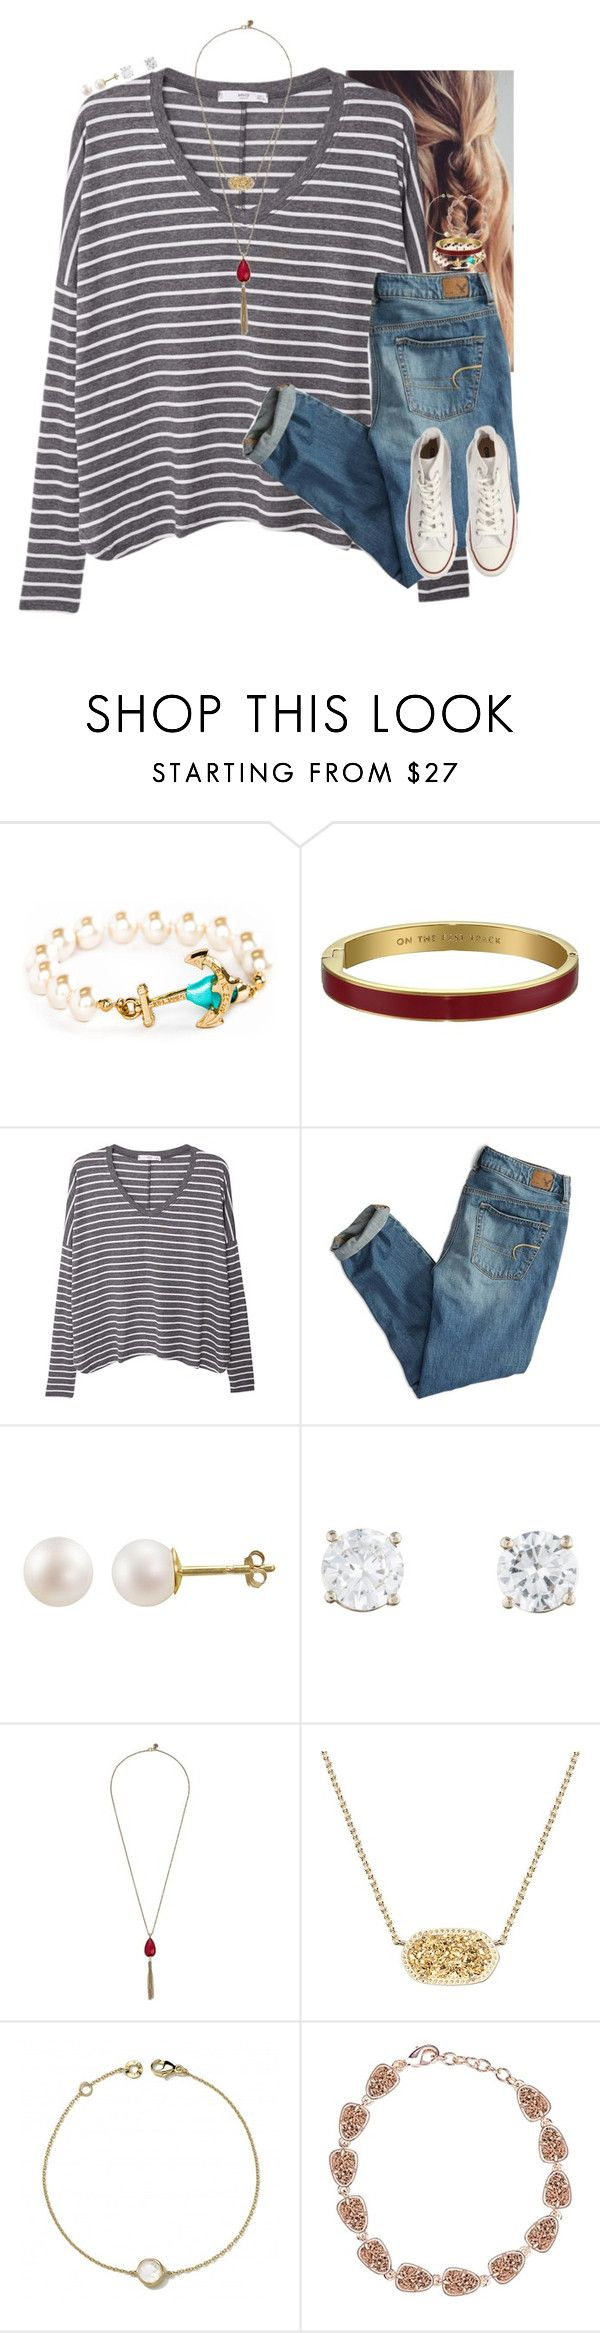 """Does It Get Weird At These Things? Define Weird."" by cfc-prep-sc ❤ liked on Polyvore featuring Kate Spade, MANGO, American Eagle Outfitters, PearLustre by Imperial, The Sak, Kendra Scott, Ippolita and Converse"